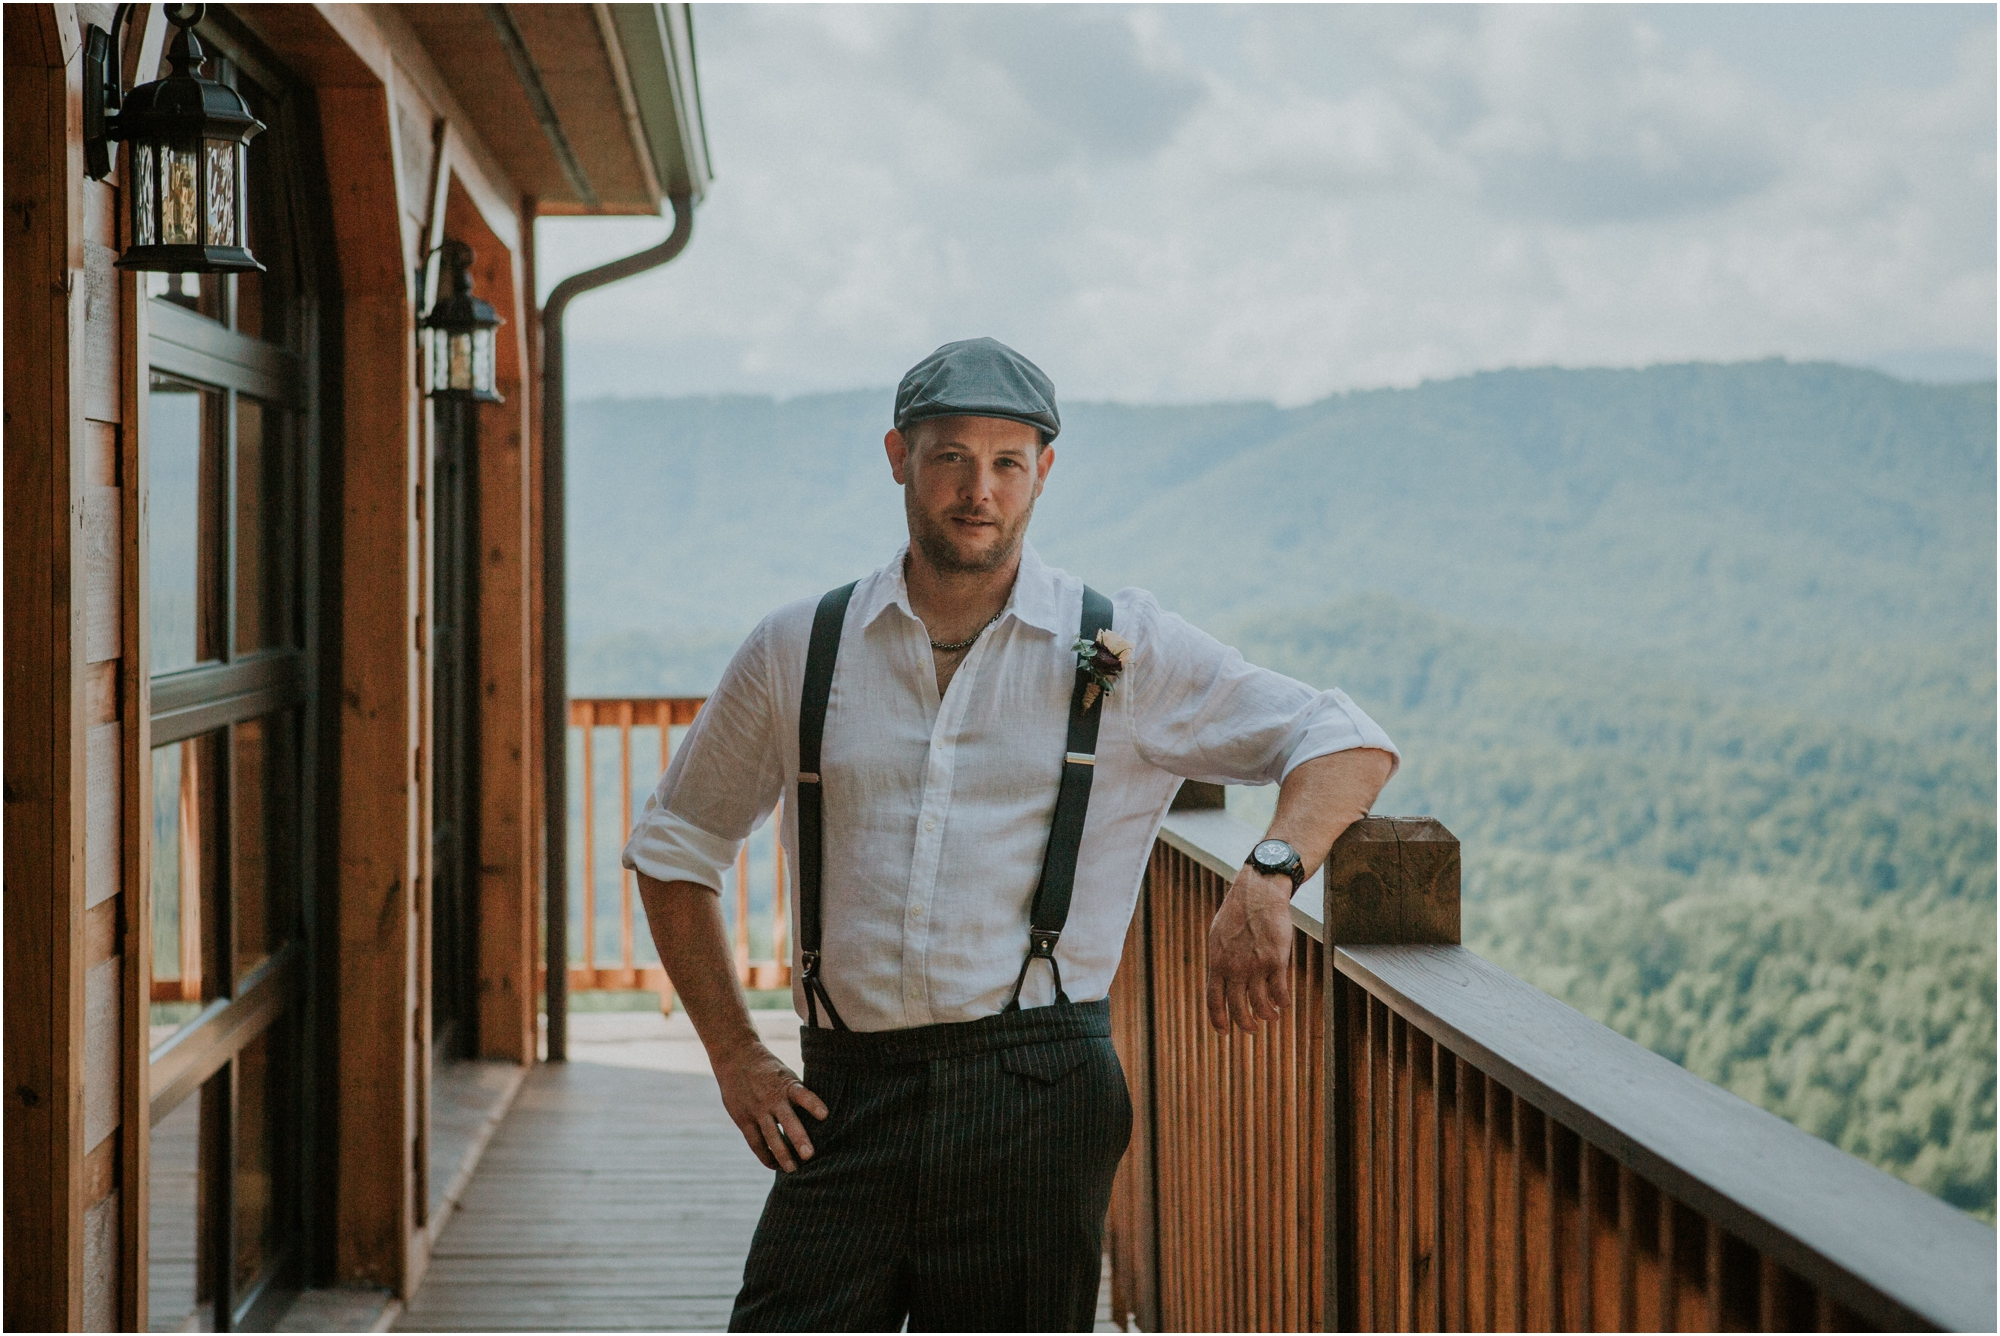 cabin-parkside-resort-the-magnolia-venue-tennessee-mountain-views-intimate-wedding_0093.jpg